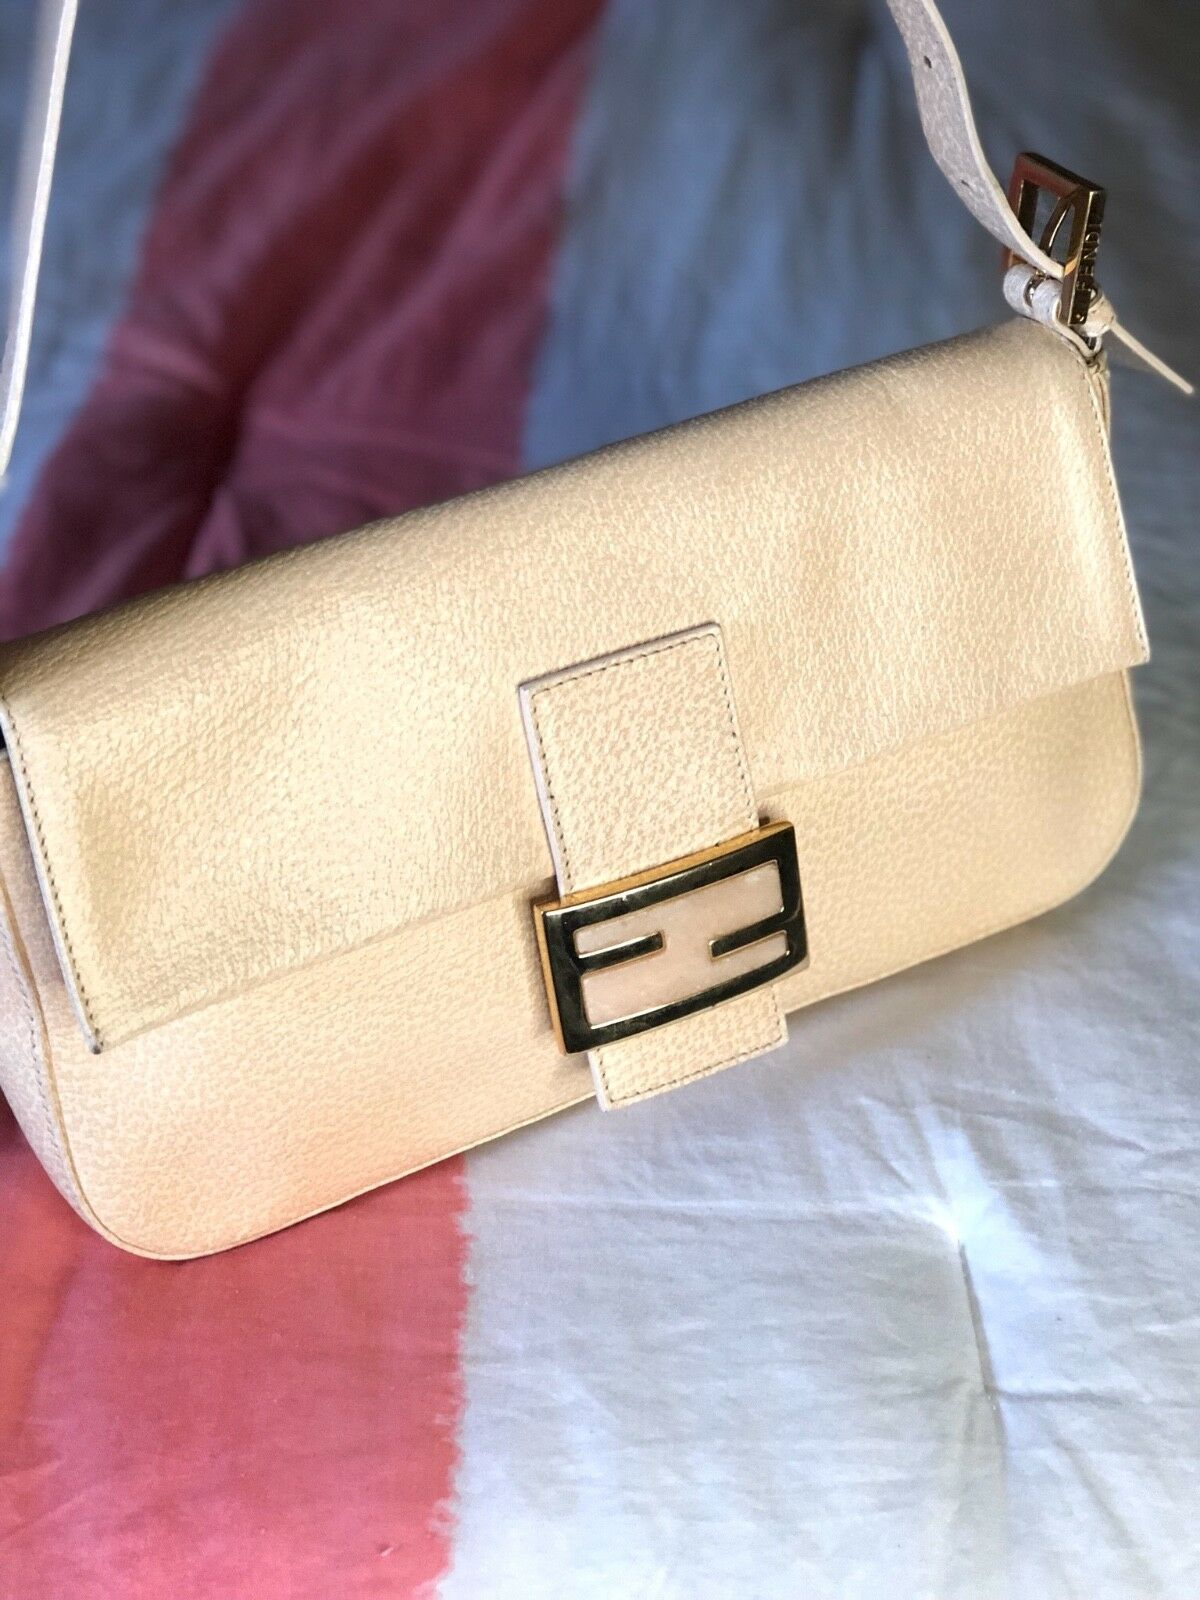 84abc17d4178 Fendi Leather Baguette Bag 1 of 6Only 1 available ...